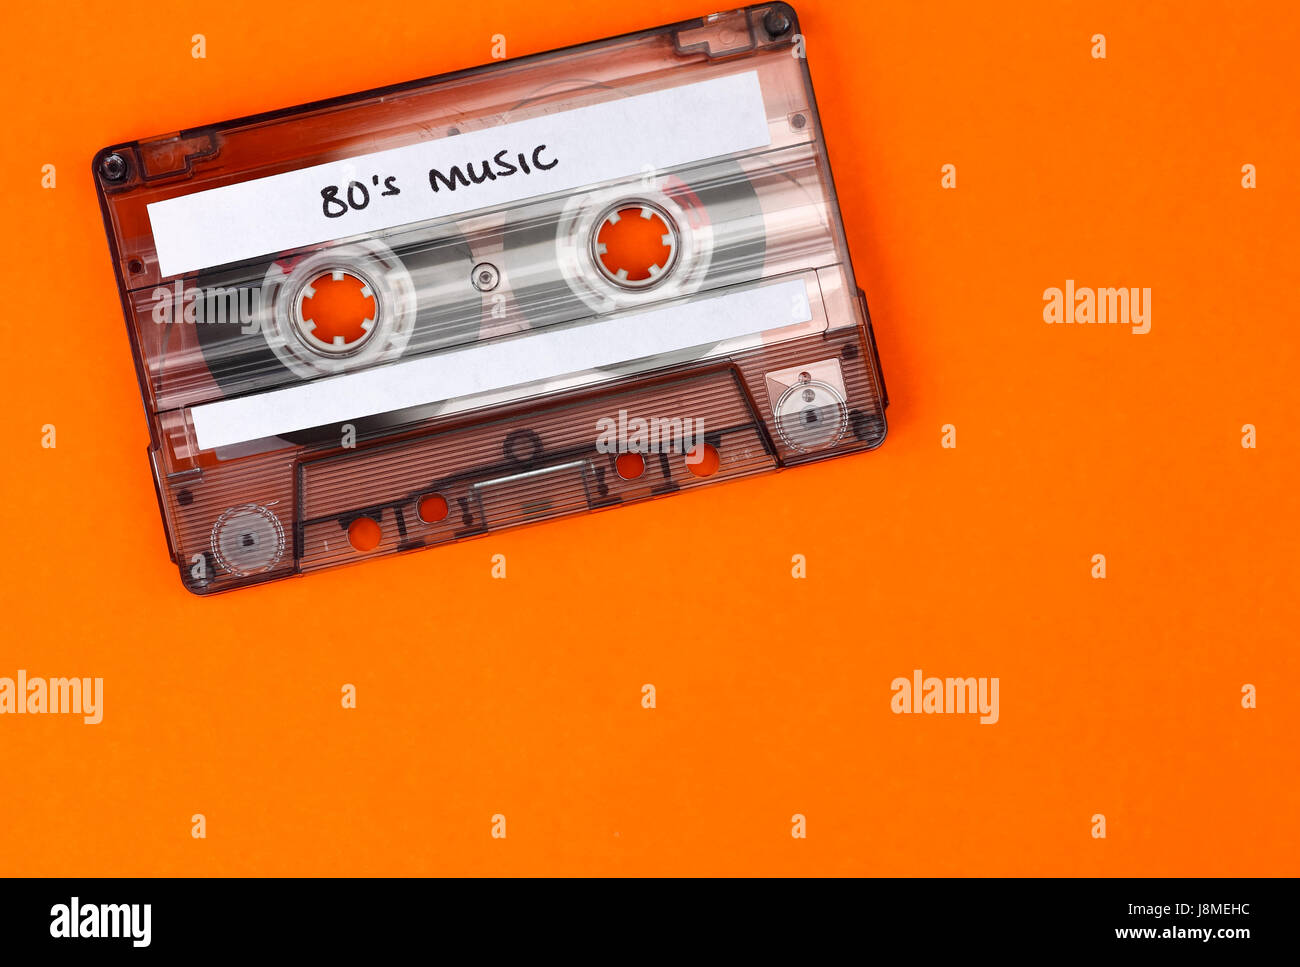 Retro cassette tape which has the wording 80's music wrote on it and an orange background - Stock Image